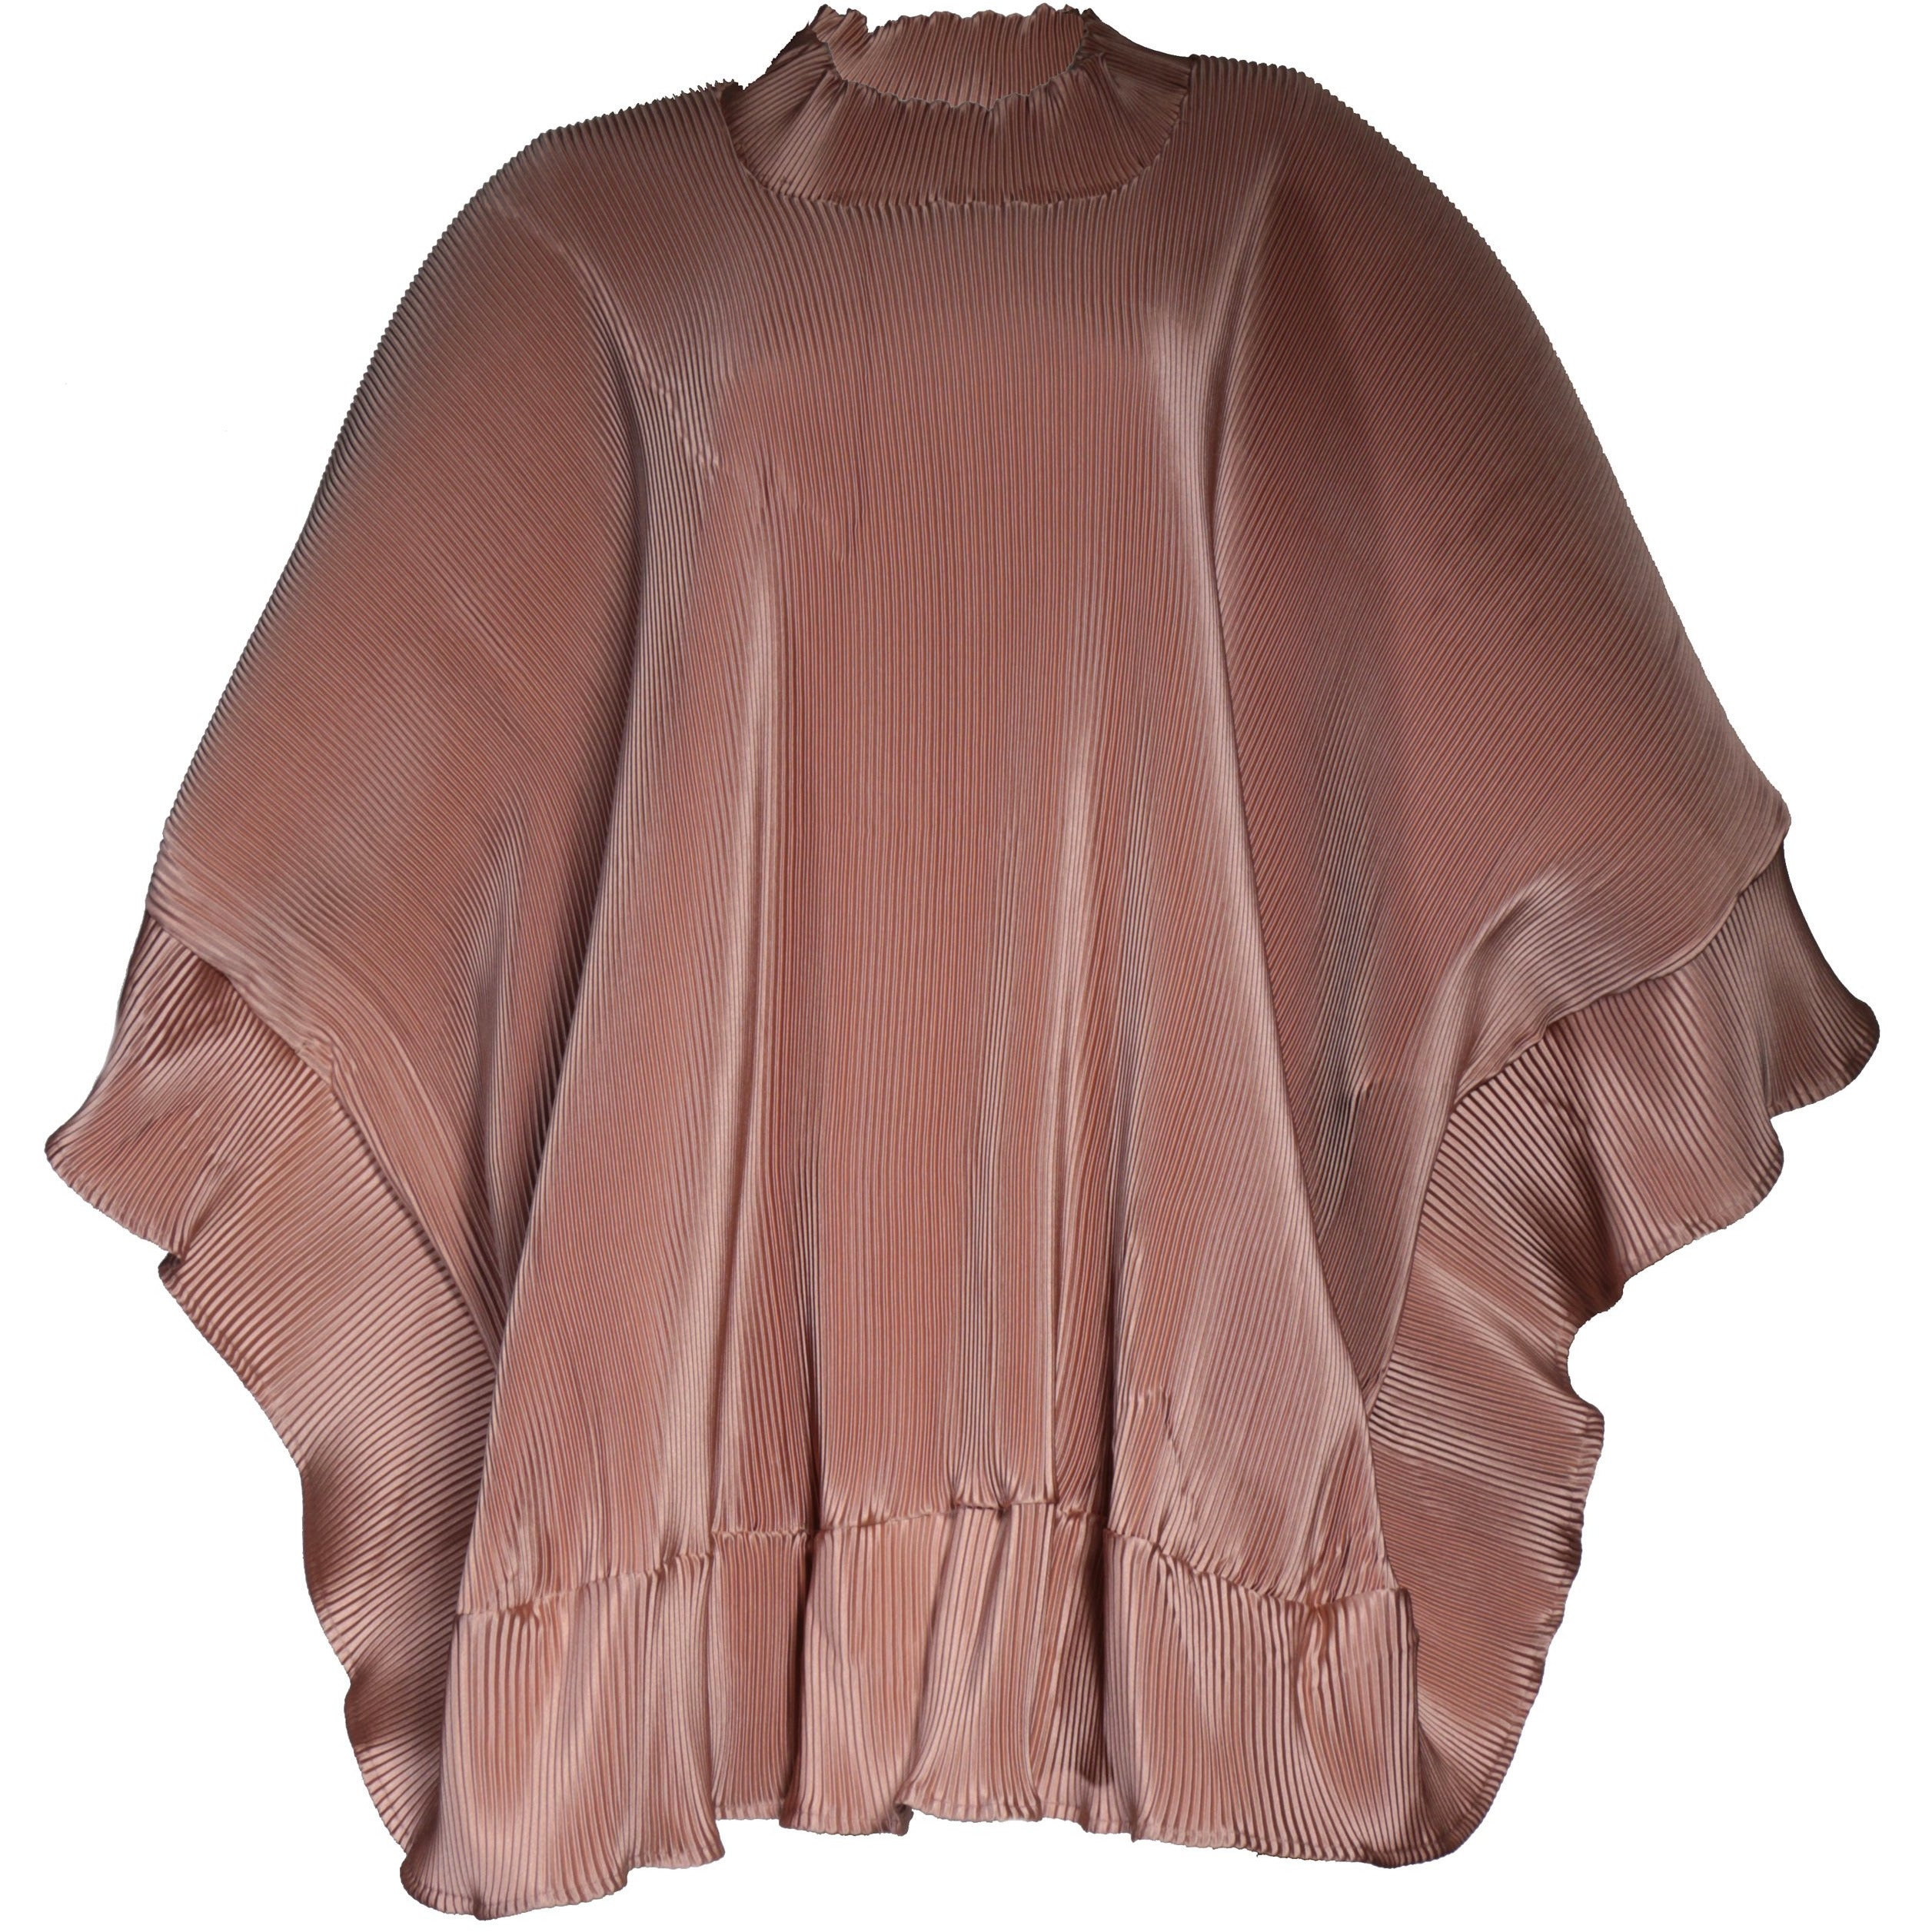 Tan poncho pleated dress